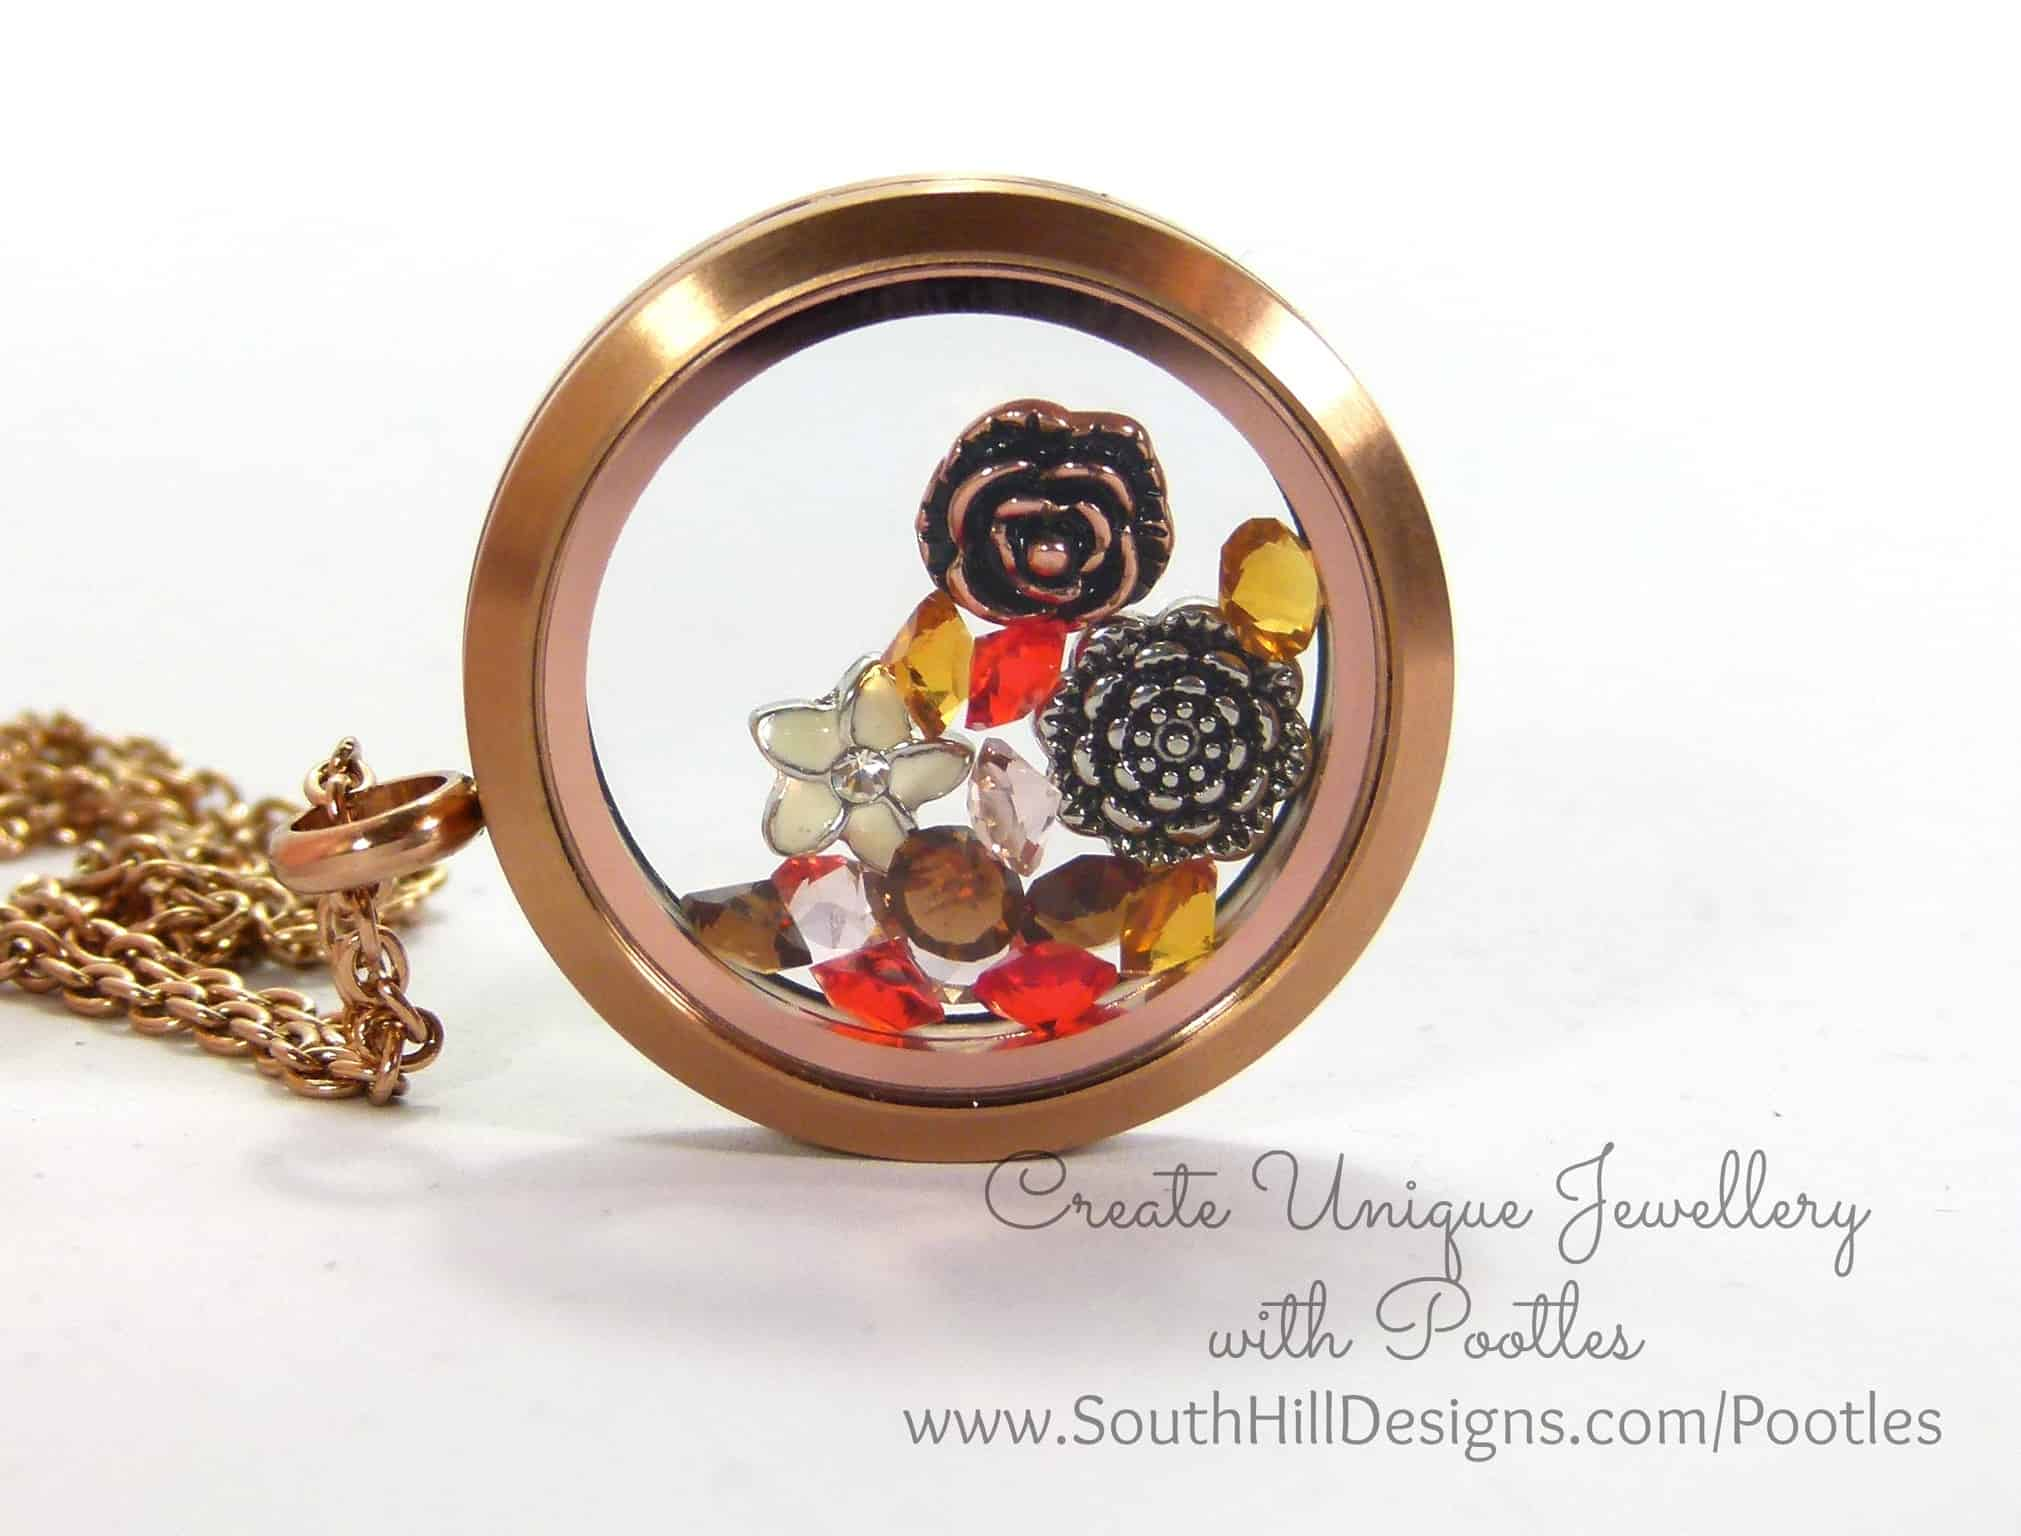 South Hill Designs & Stampin' Up! Sunday Irresistibly Yours Locket Box Tutorial